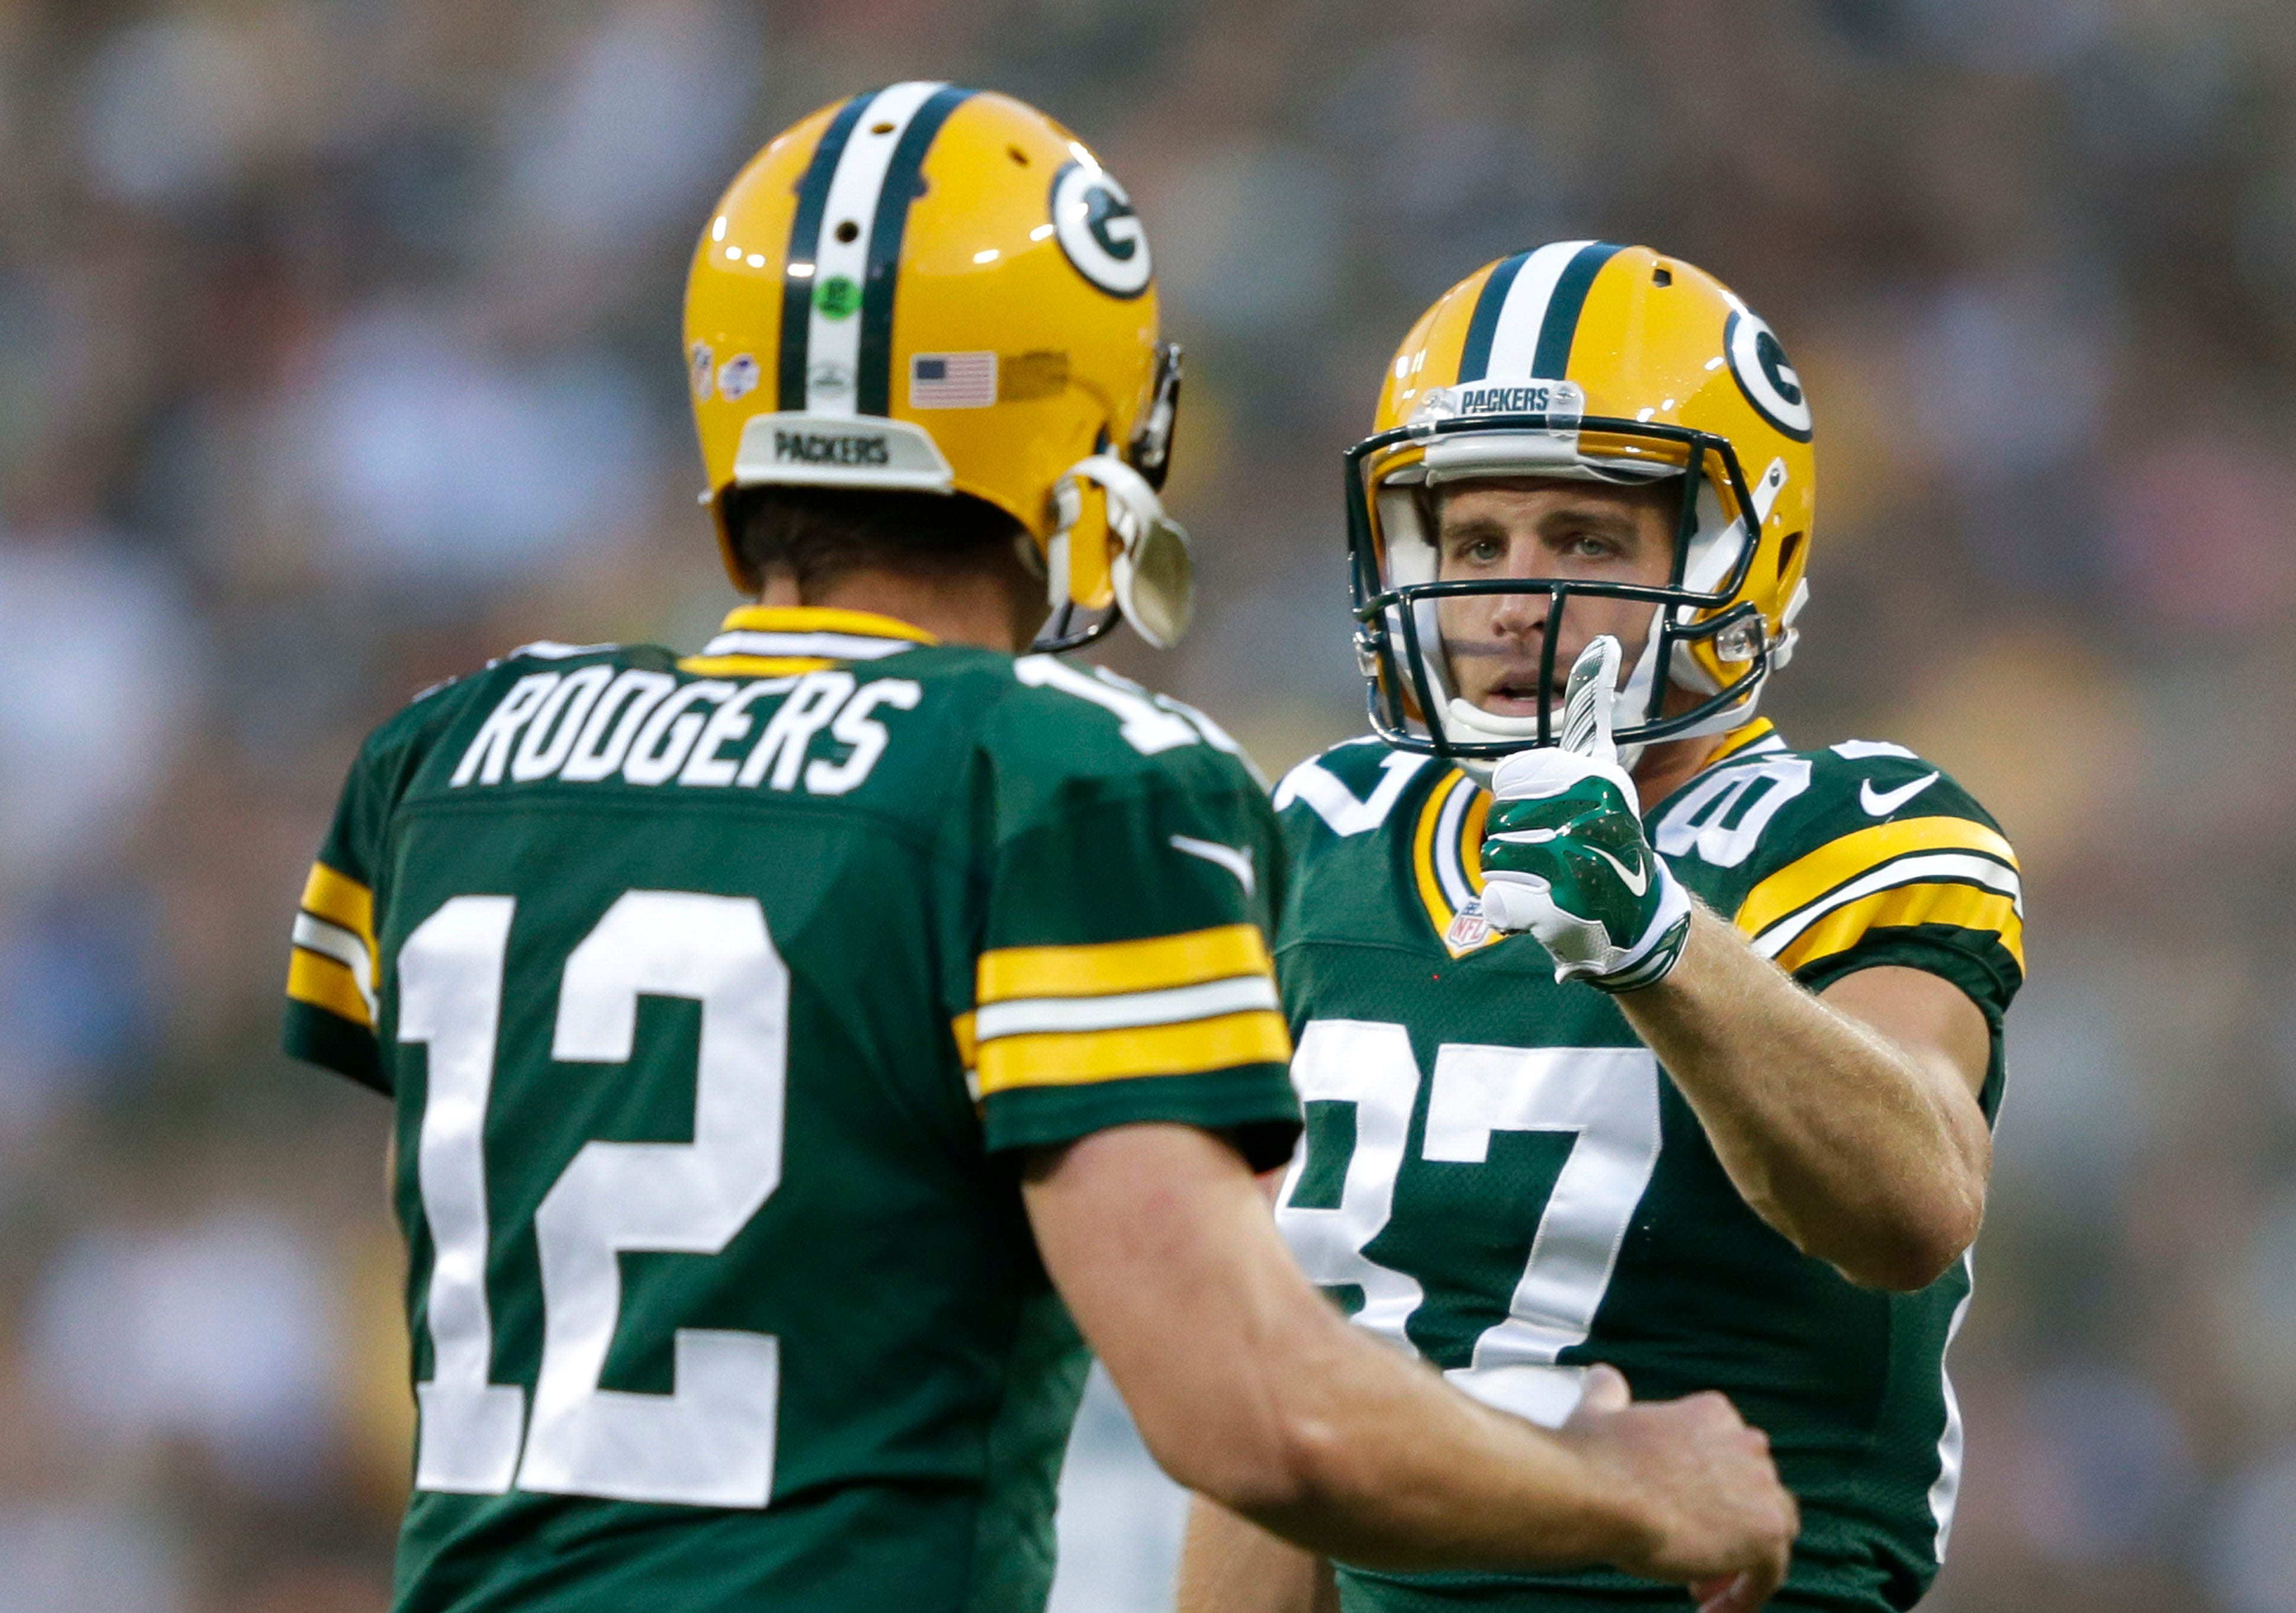 Aaron Rodgers and Jordy Nelson defend Packers doctor